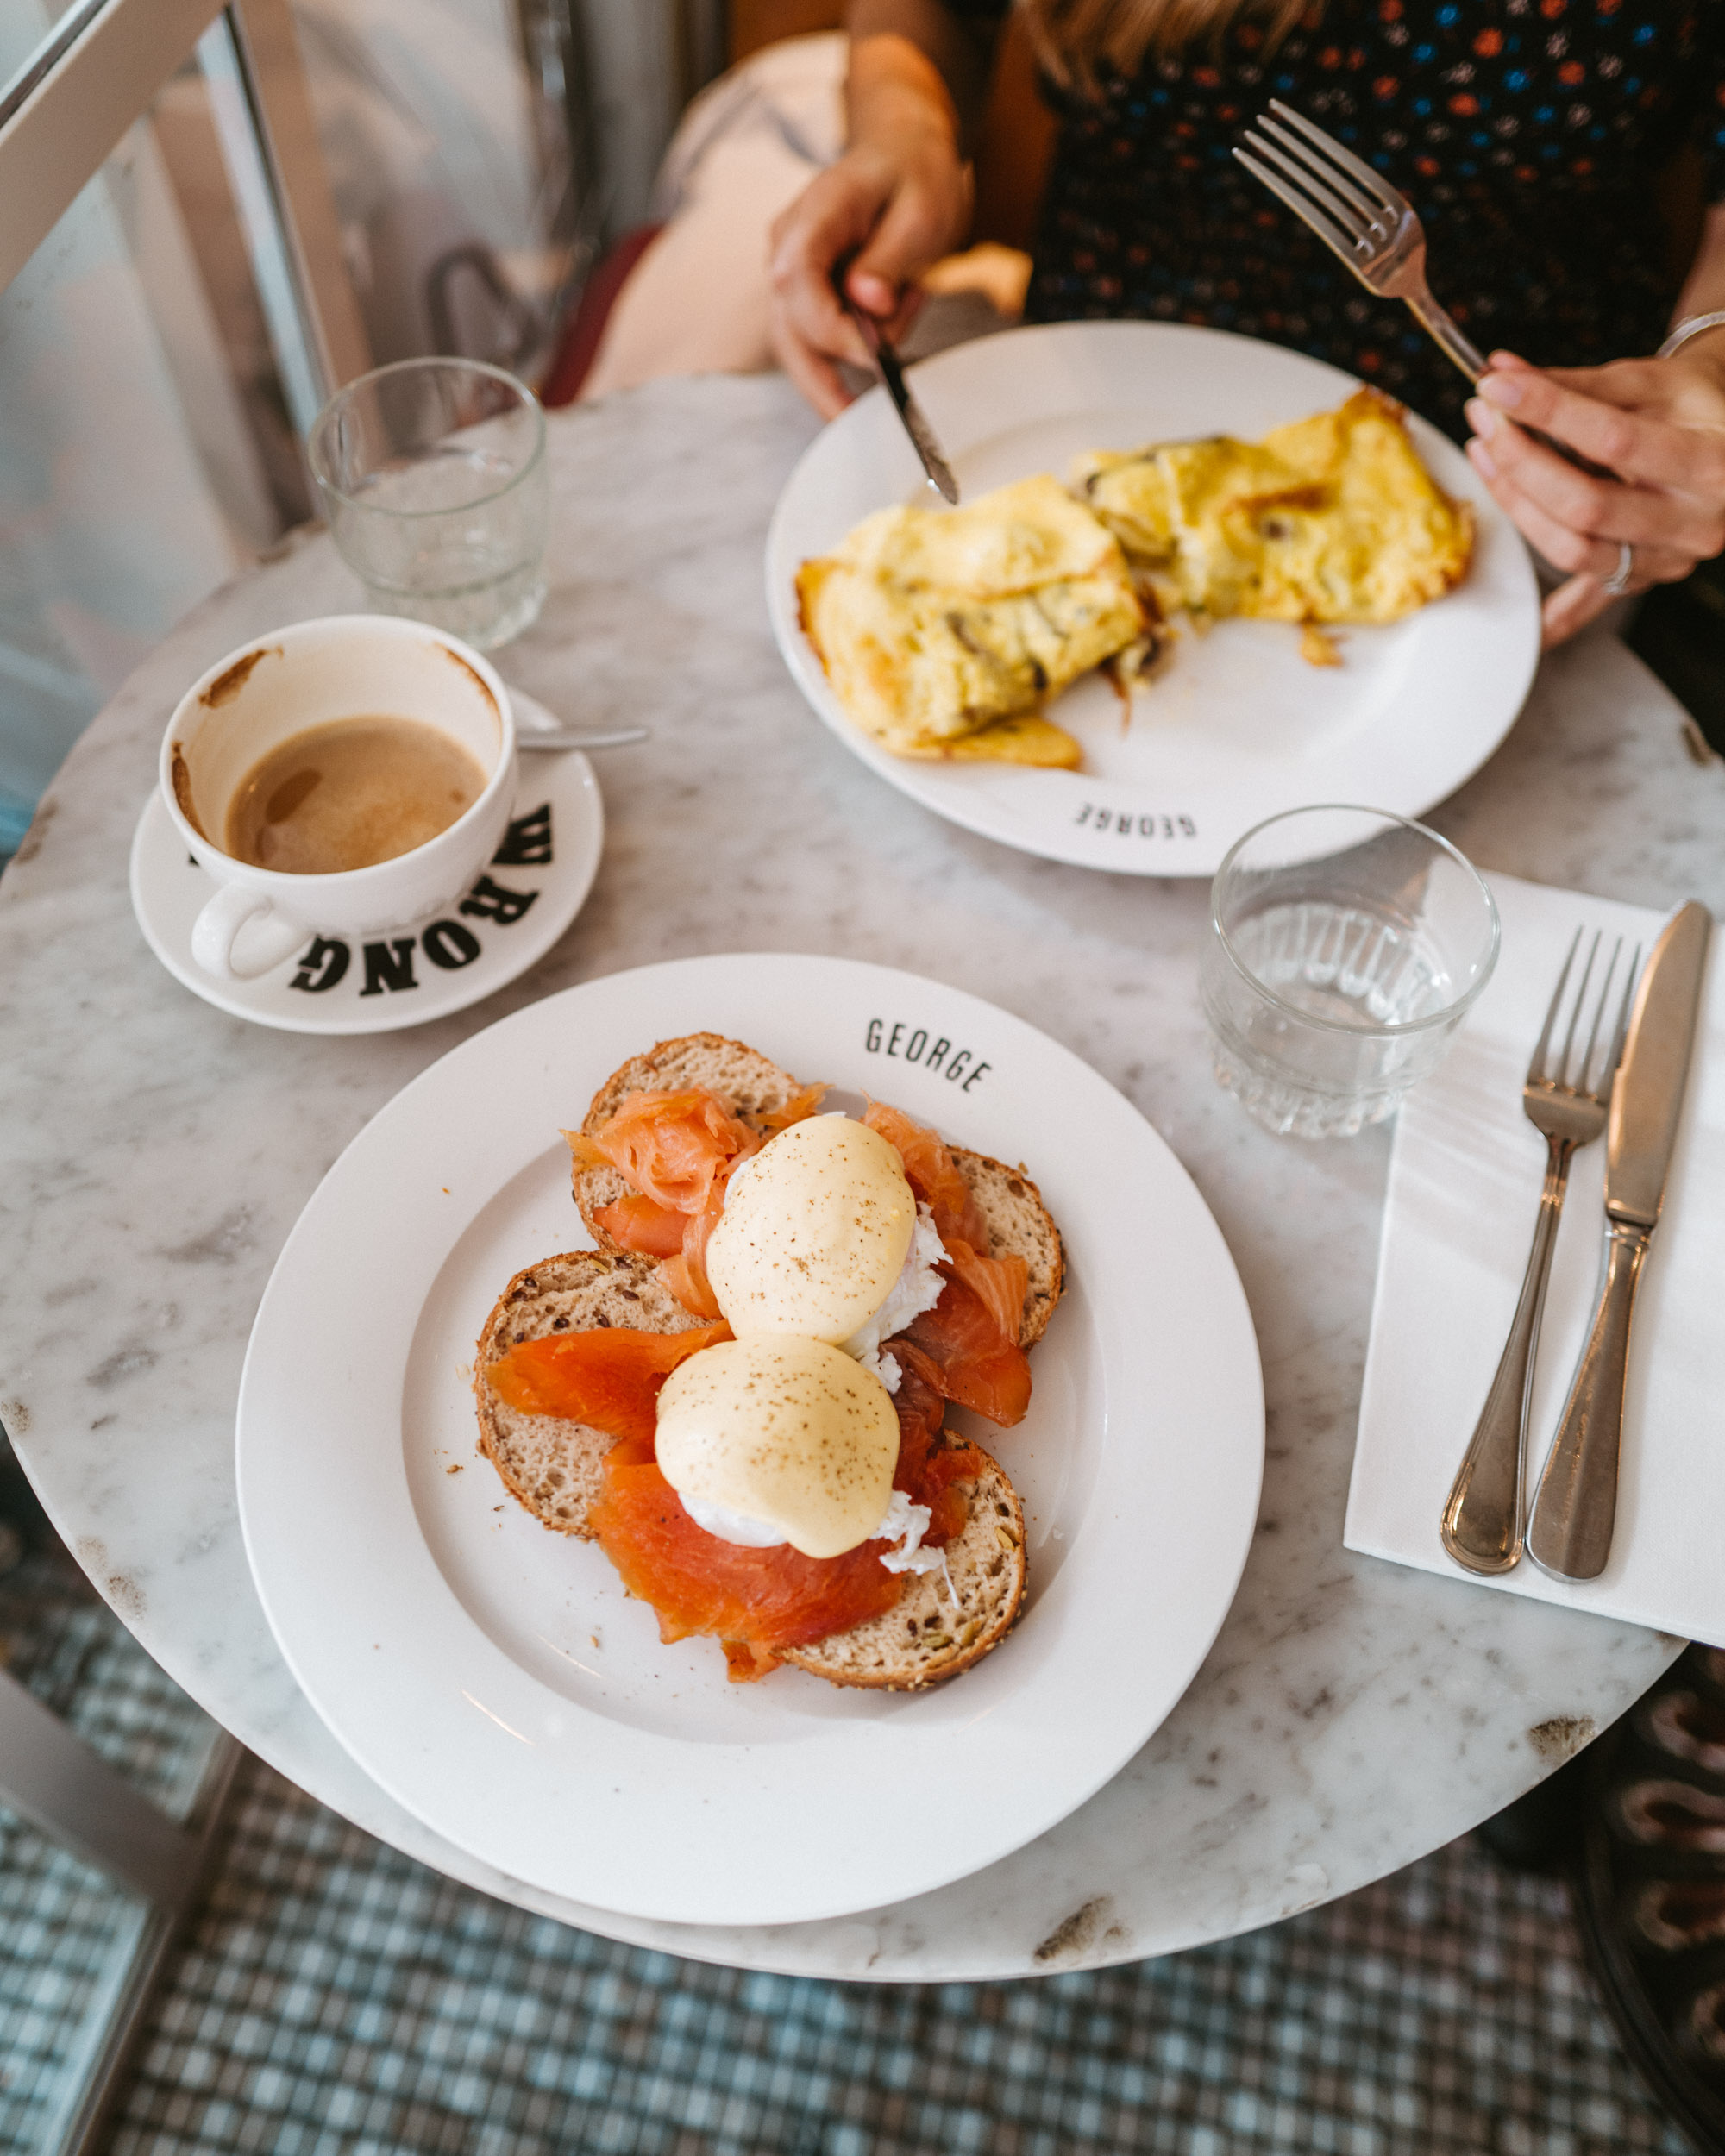 Cafe George Restaurant in Amsterdam for Brunch via @finduslost